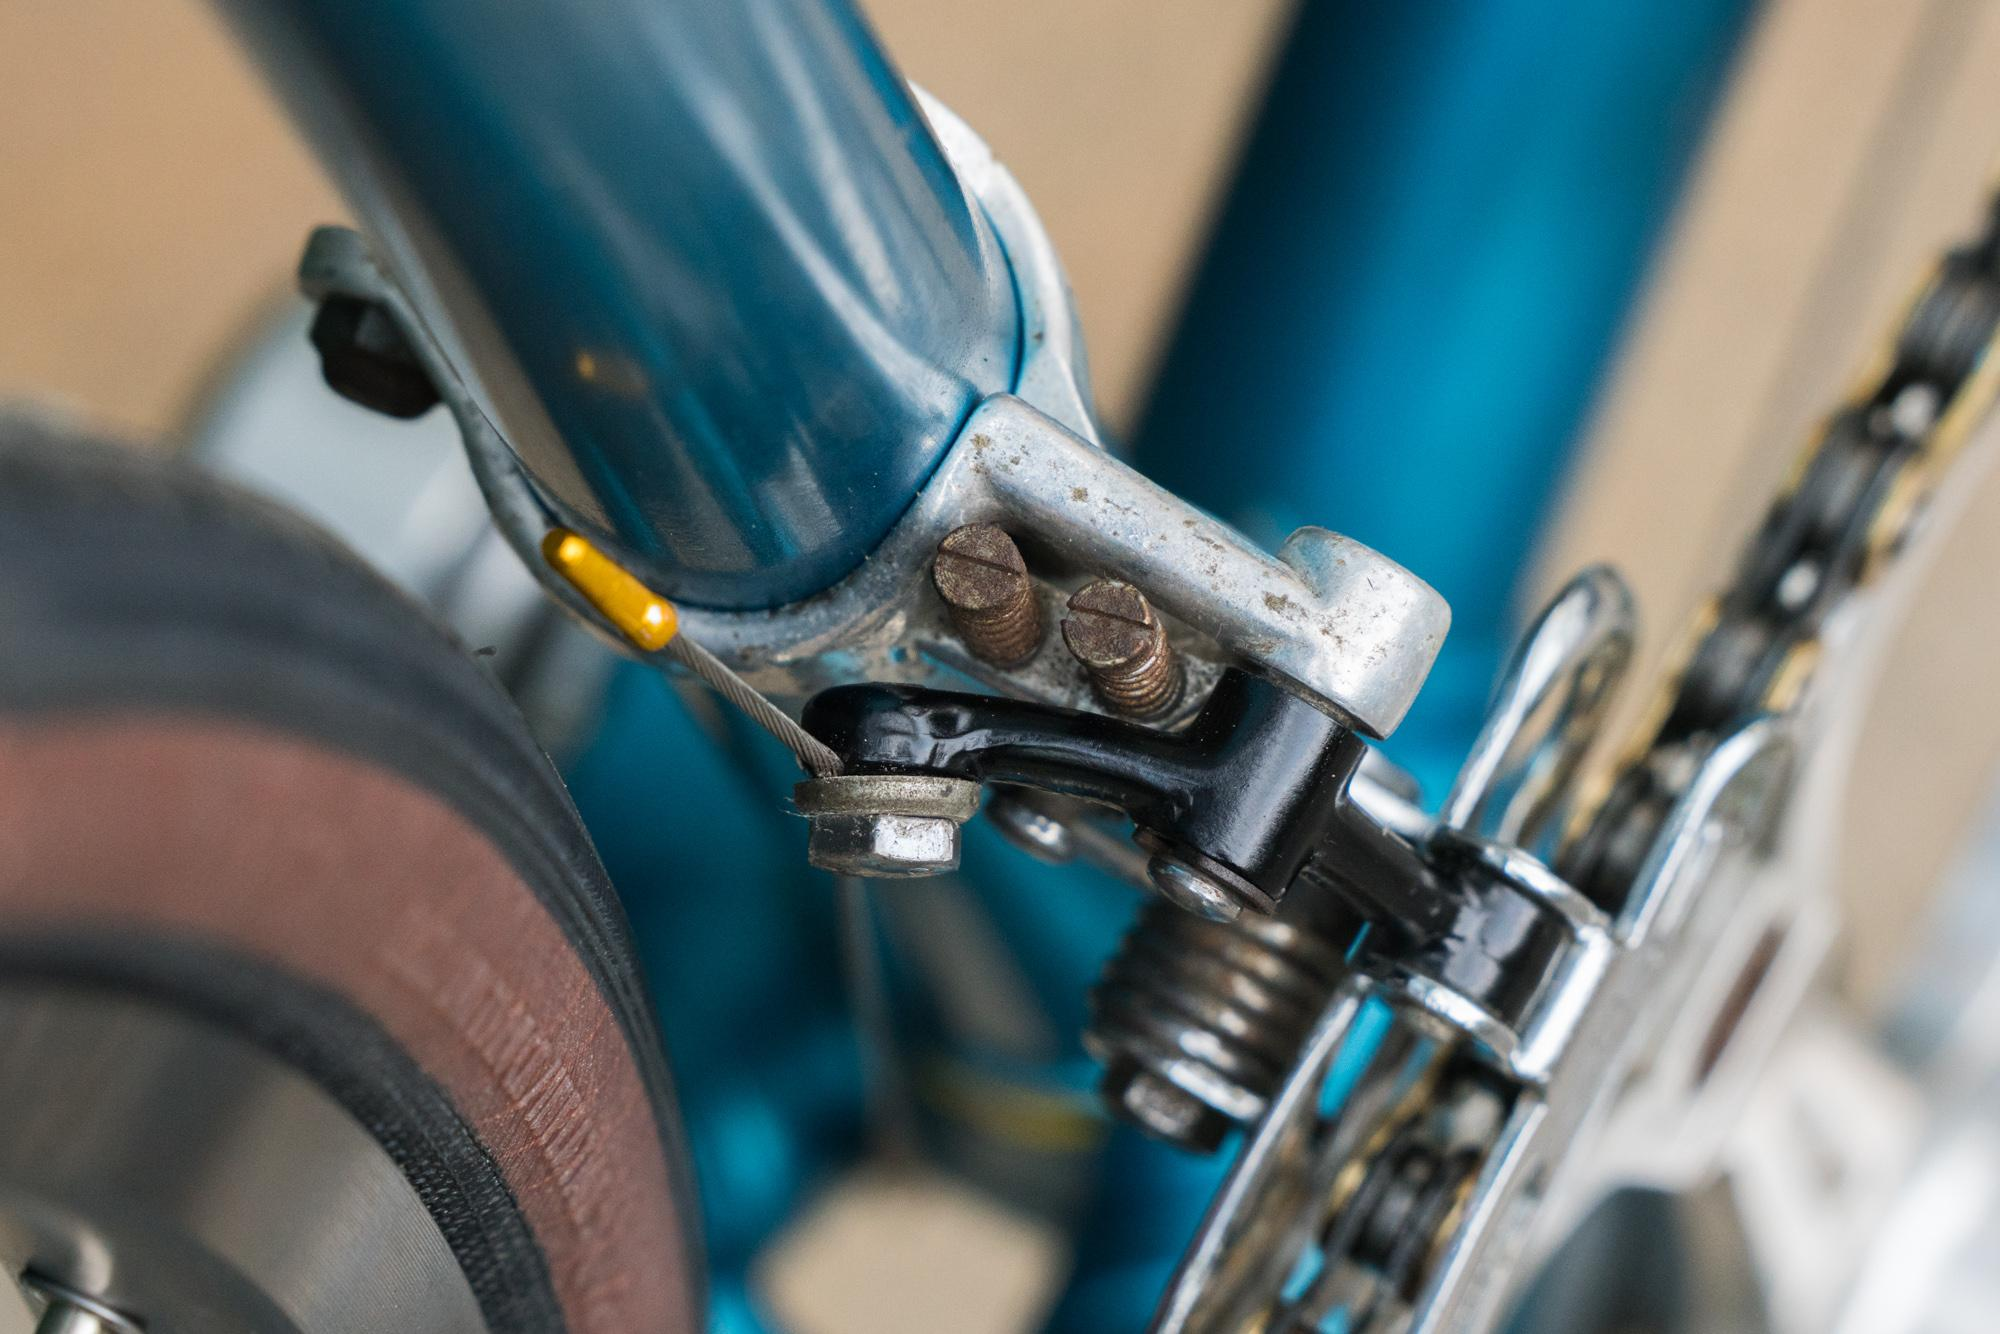 Johns Cool Colnago Coolnago (14 of 27)